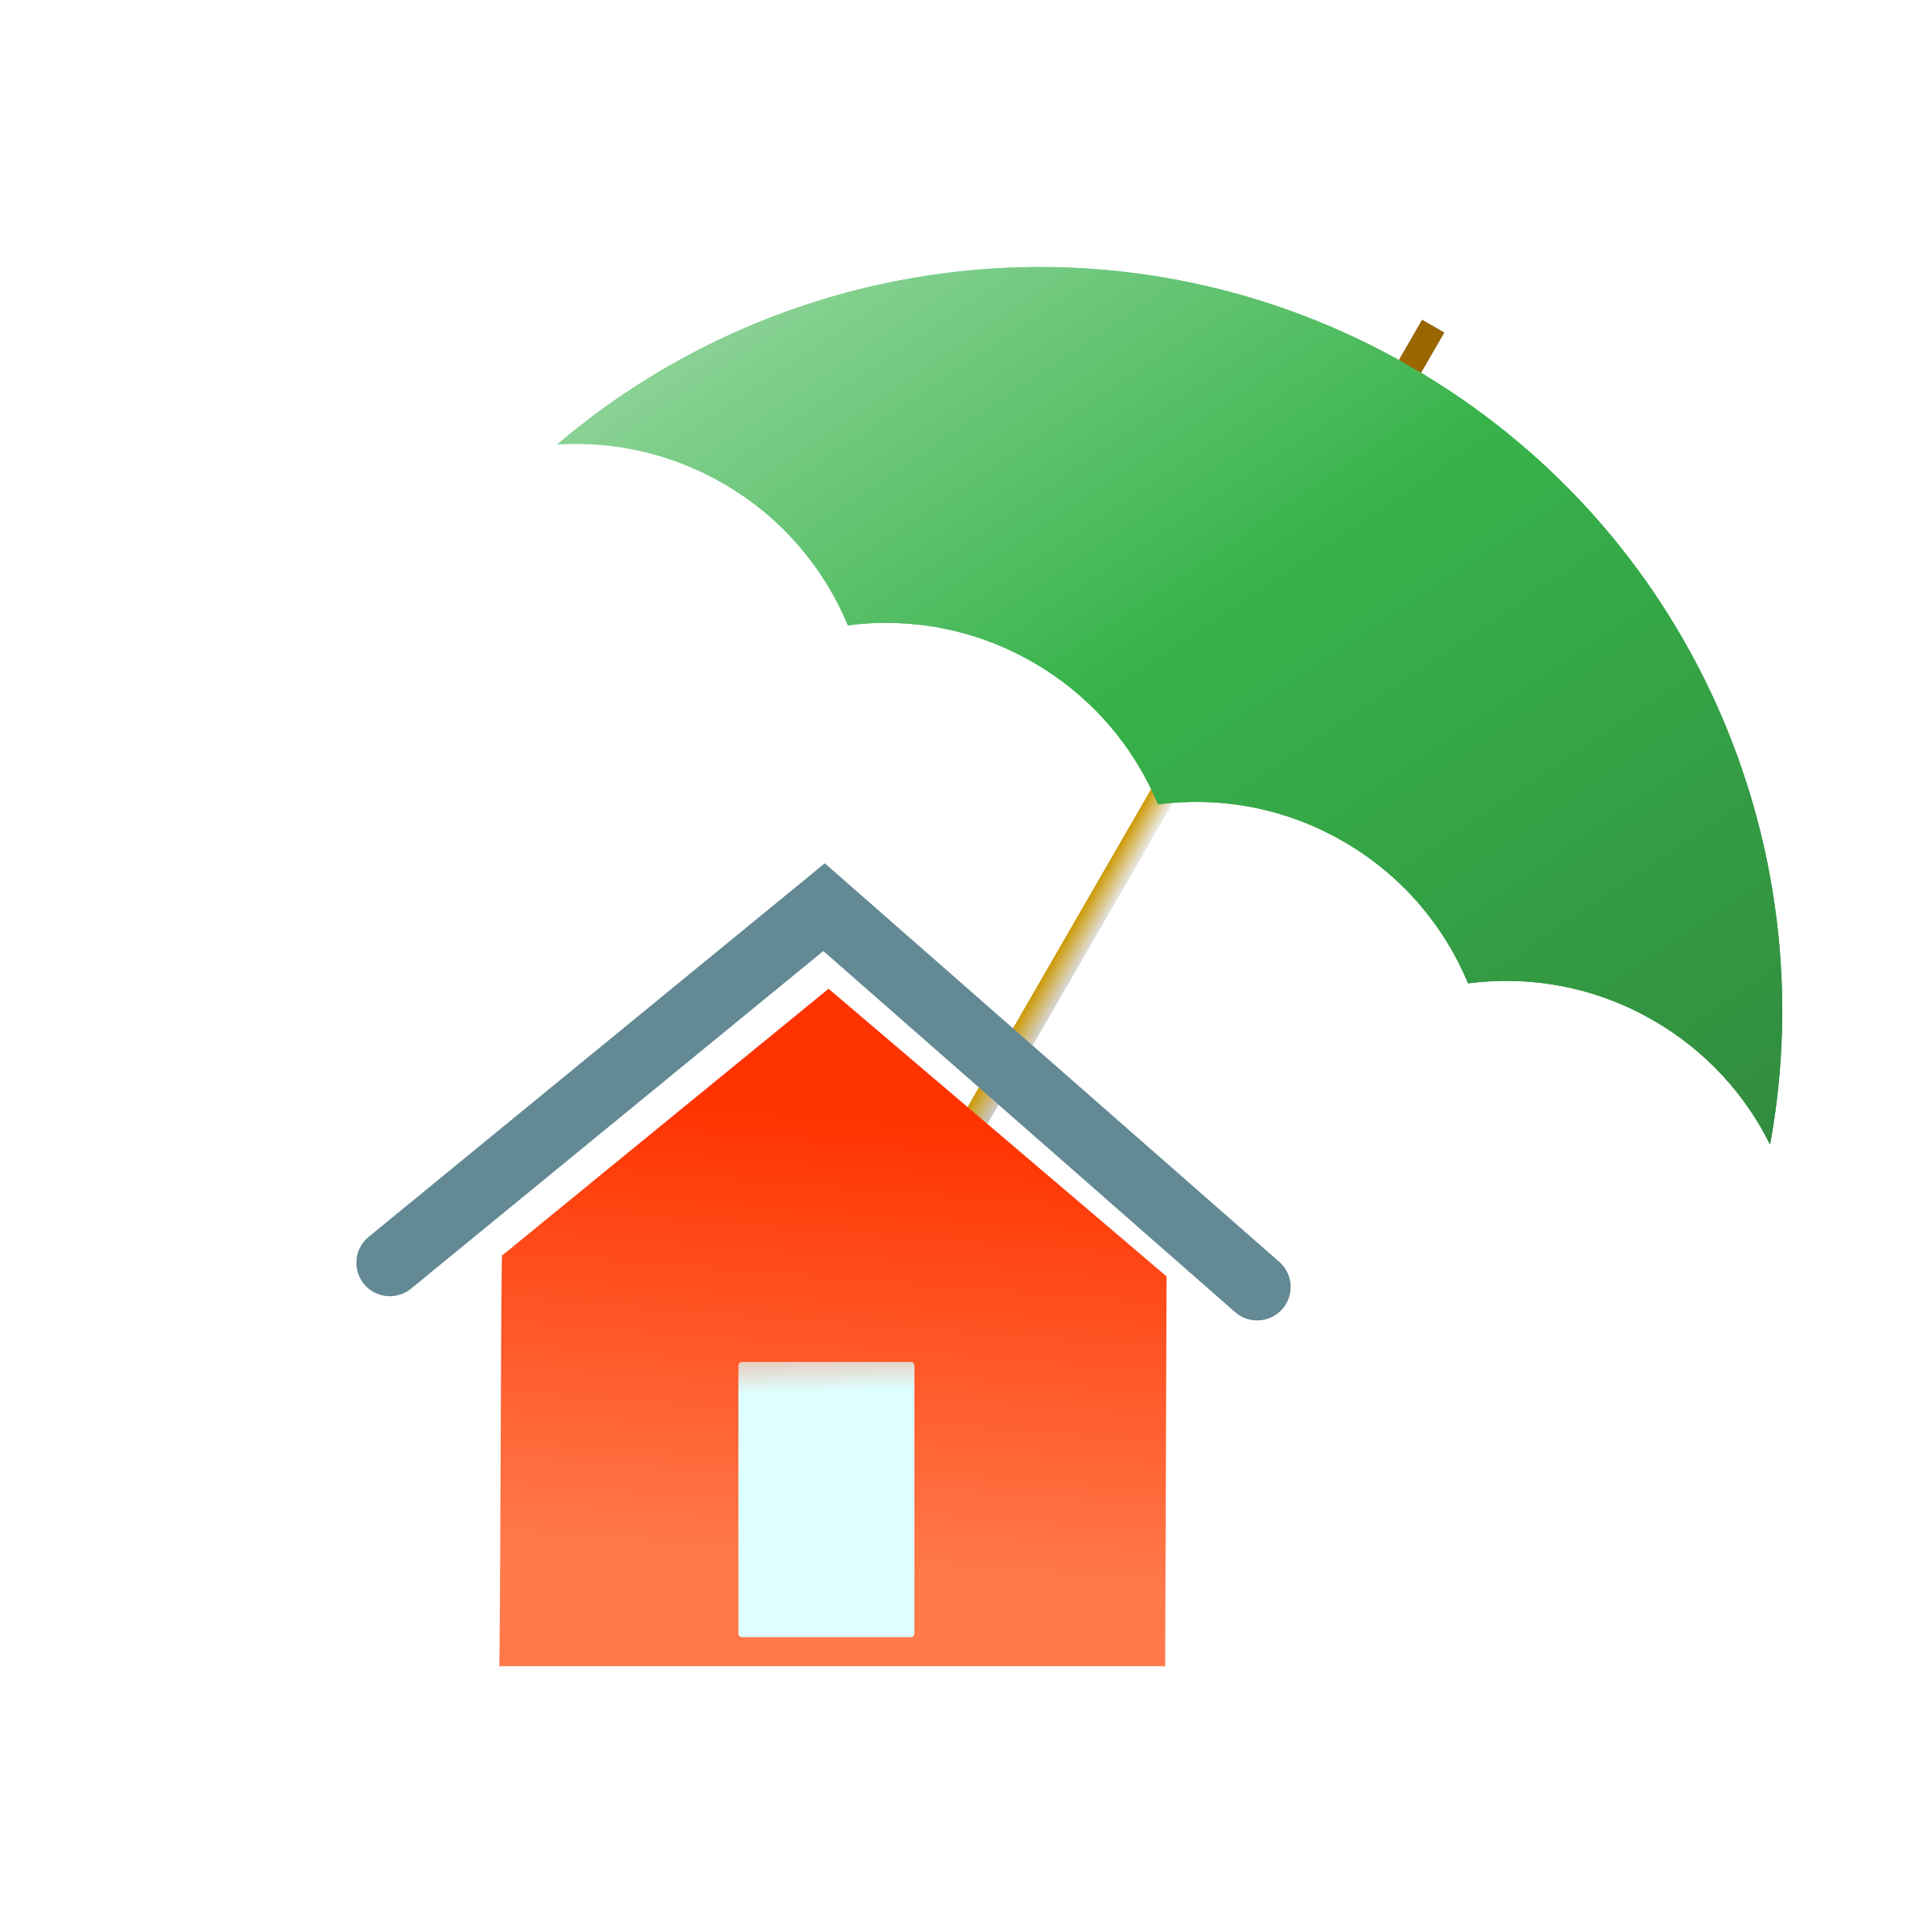 Home clipart safety. Insurance big image png